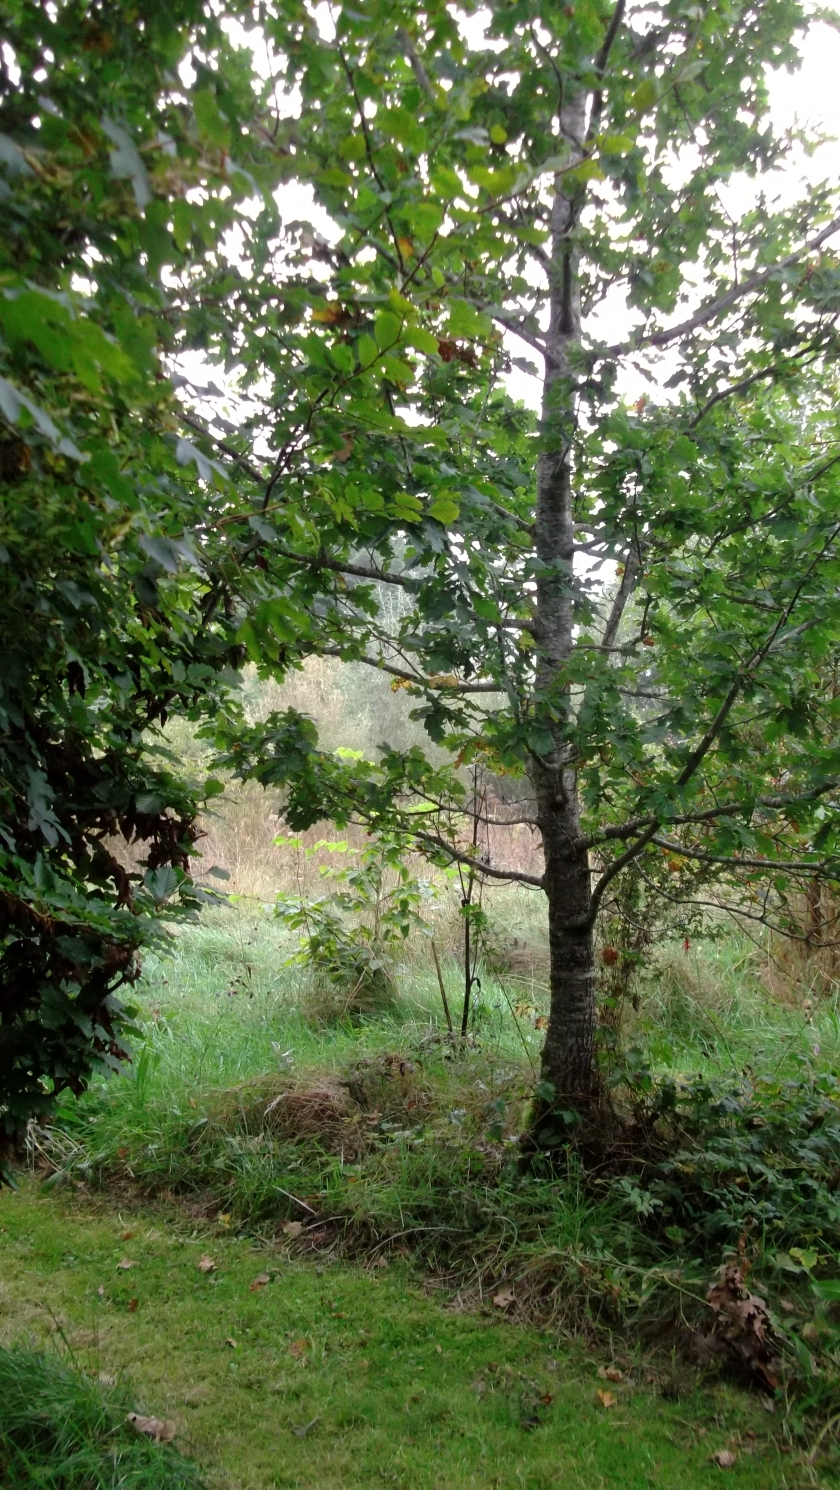 Autumn in permaculture at bealtainecottage.com 020